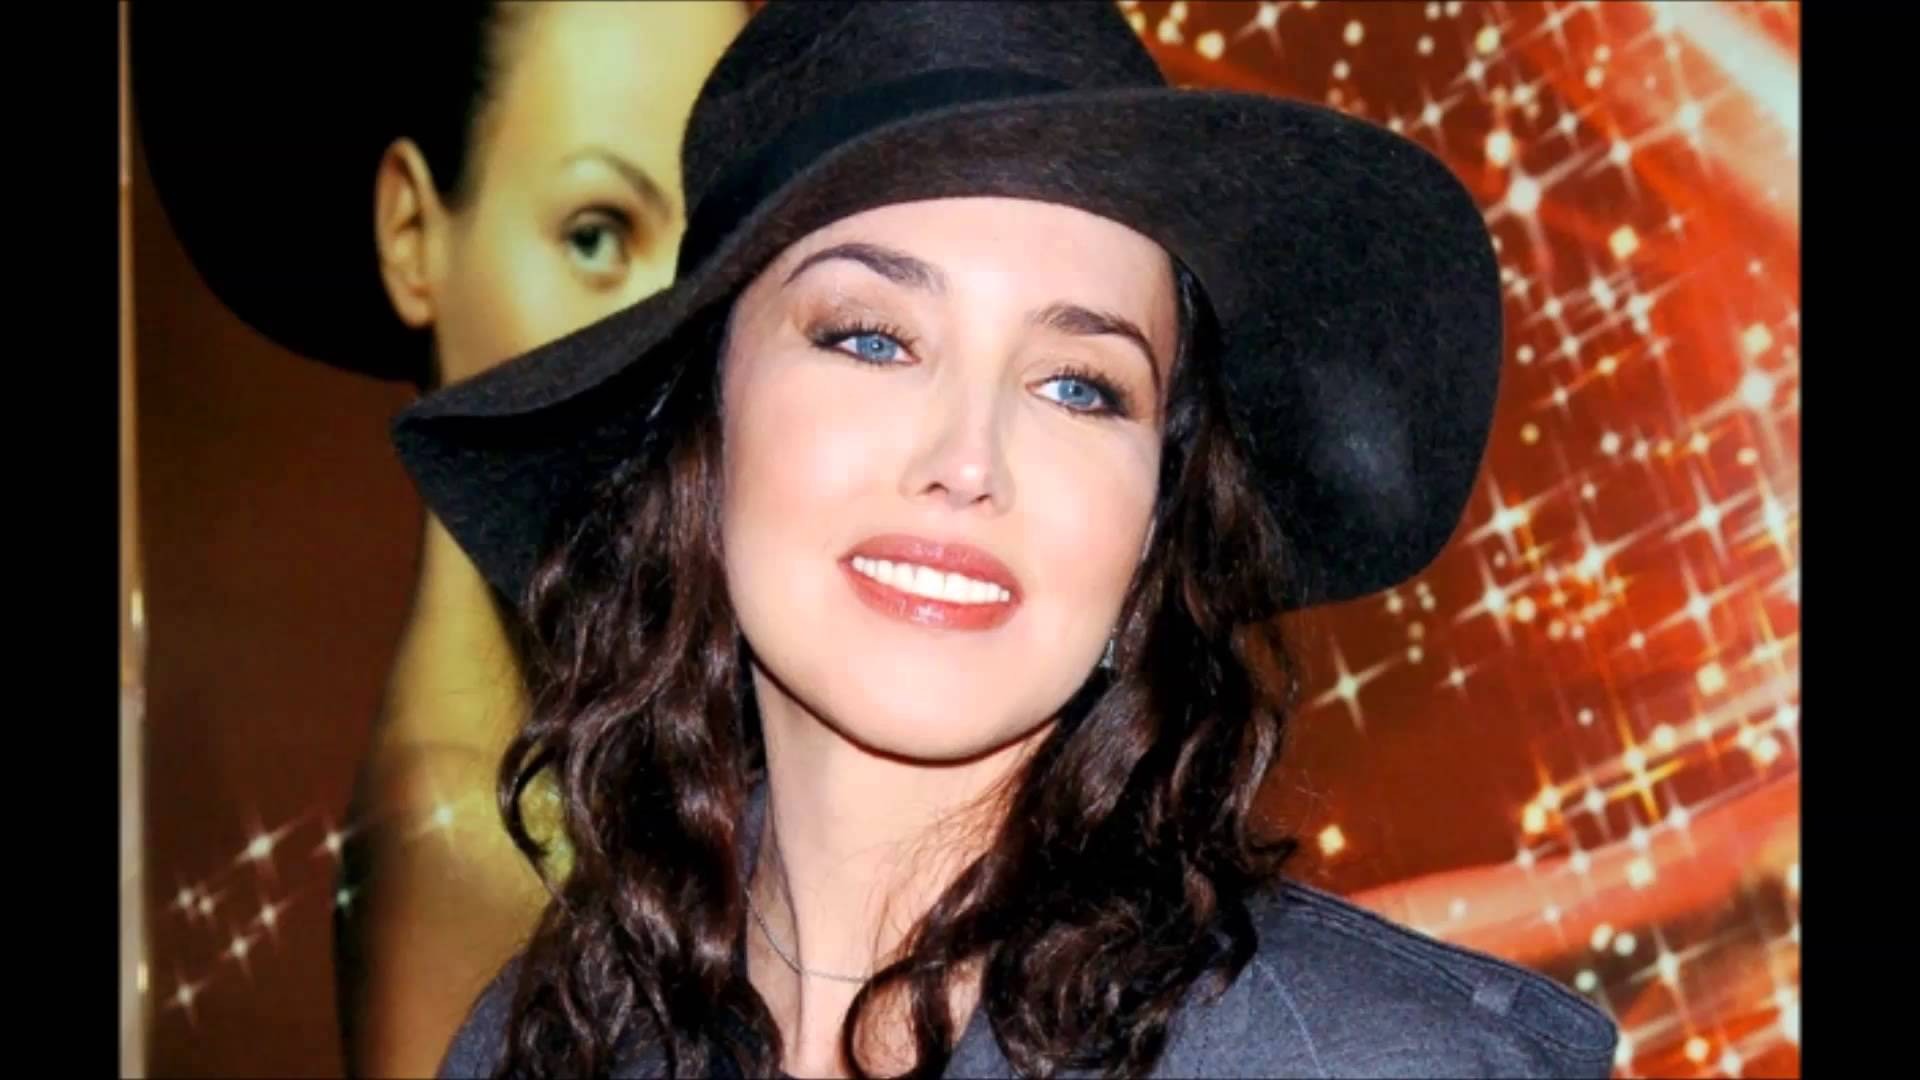 Isabelle Adjani Wallpapers hd